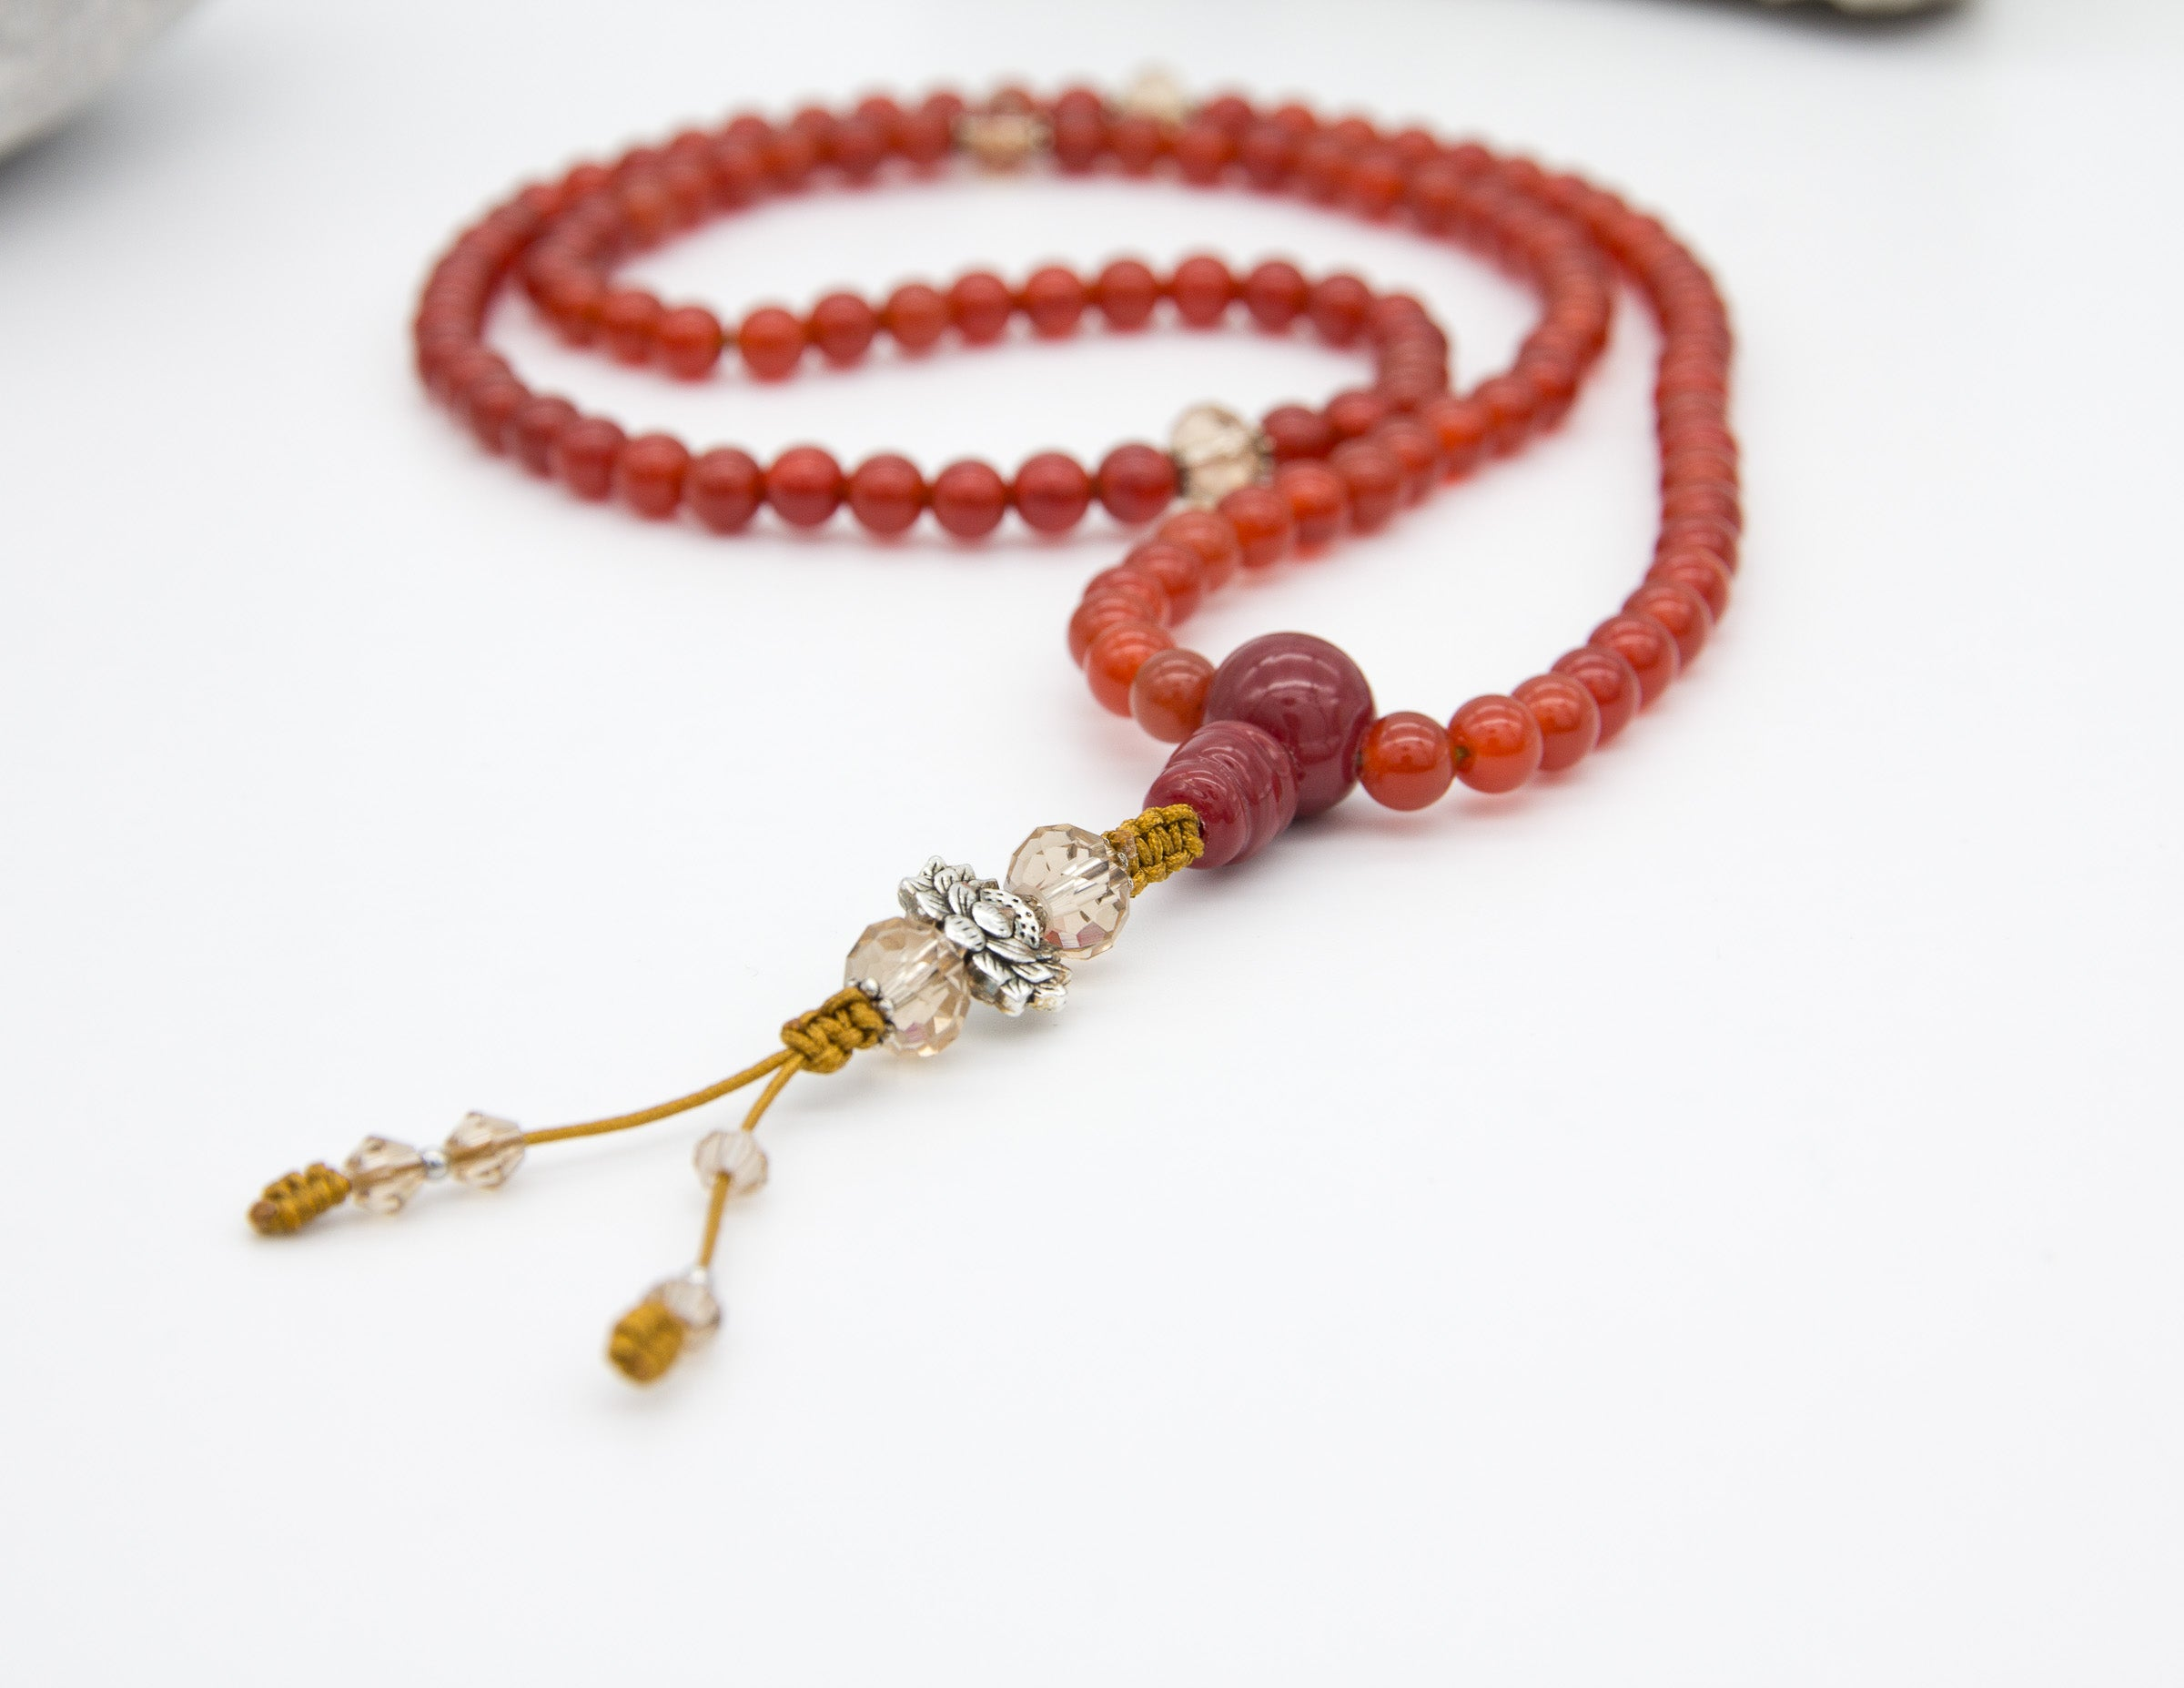 Red Carnelian Mala with Spacer Beads (Small)